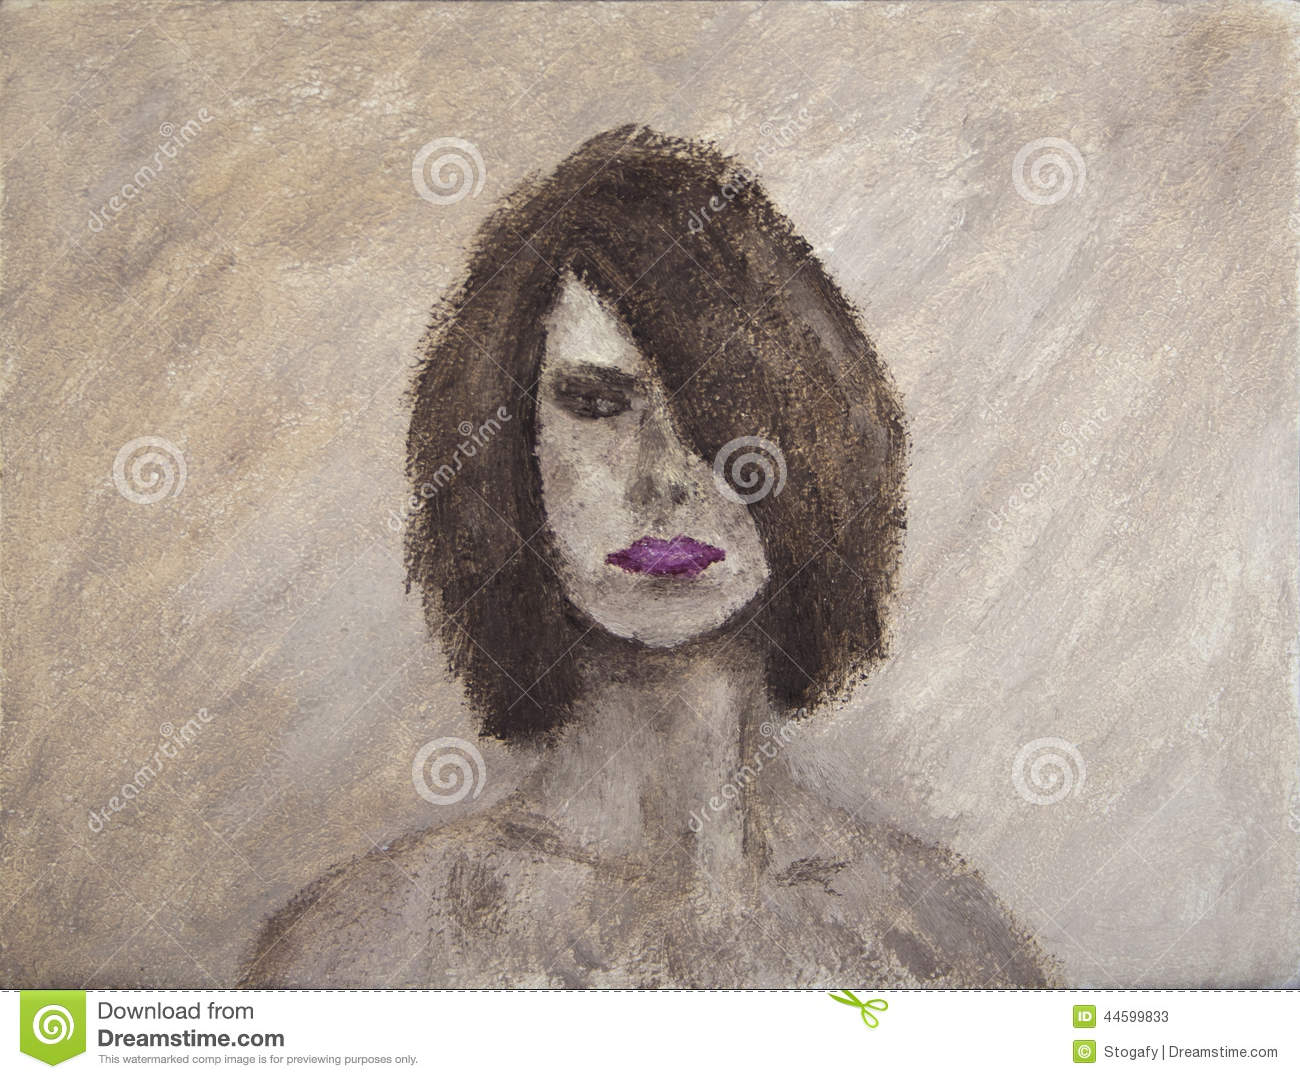 Download Oil Painting Portrait Of A Mystery Woman Stock Image - Image of monotone, hand: 44599833